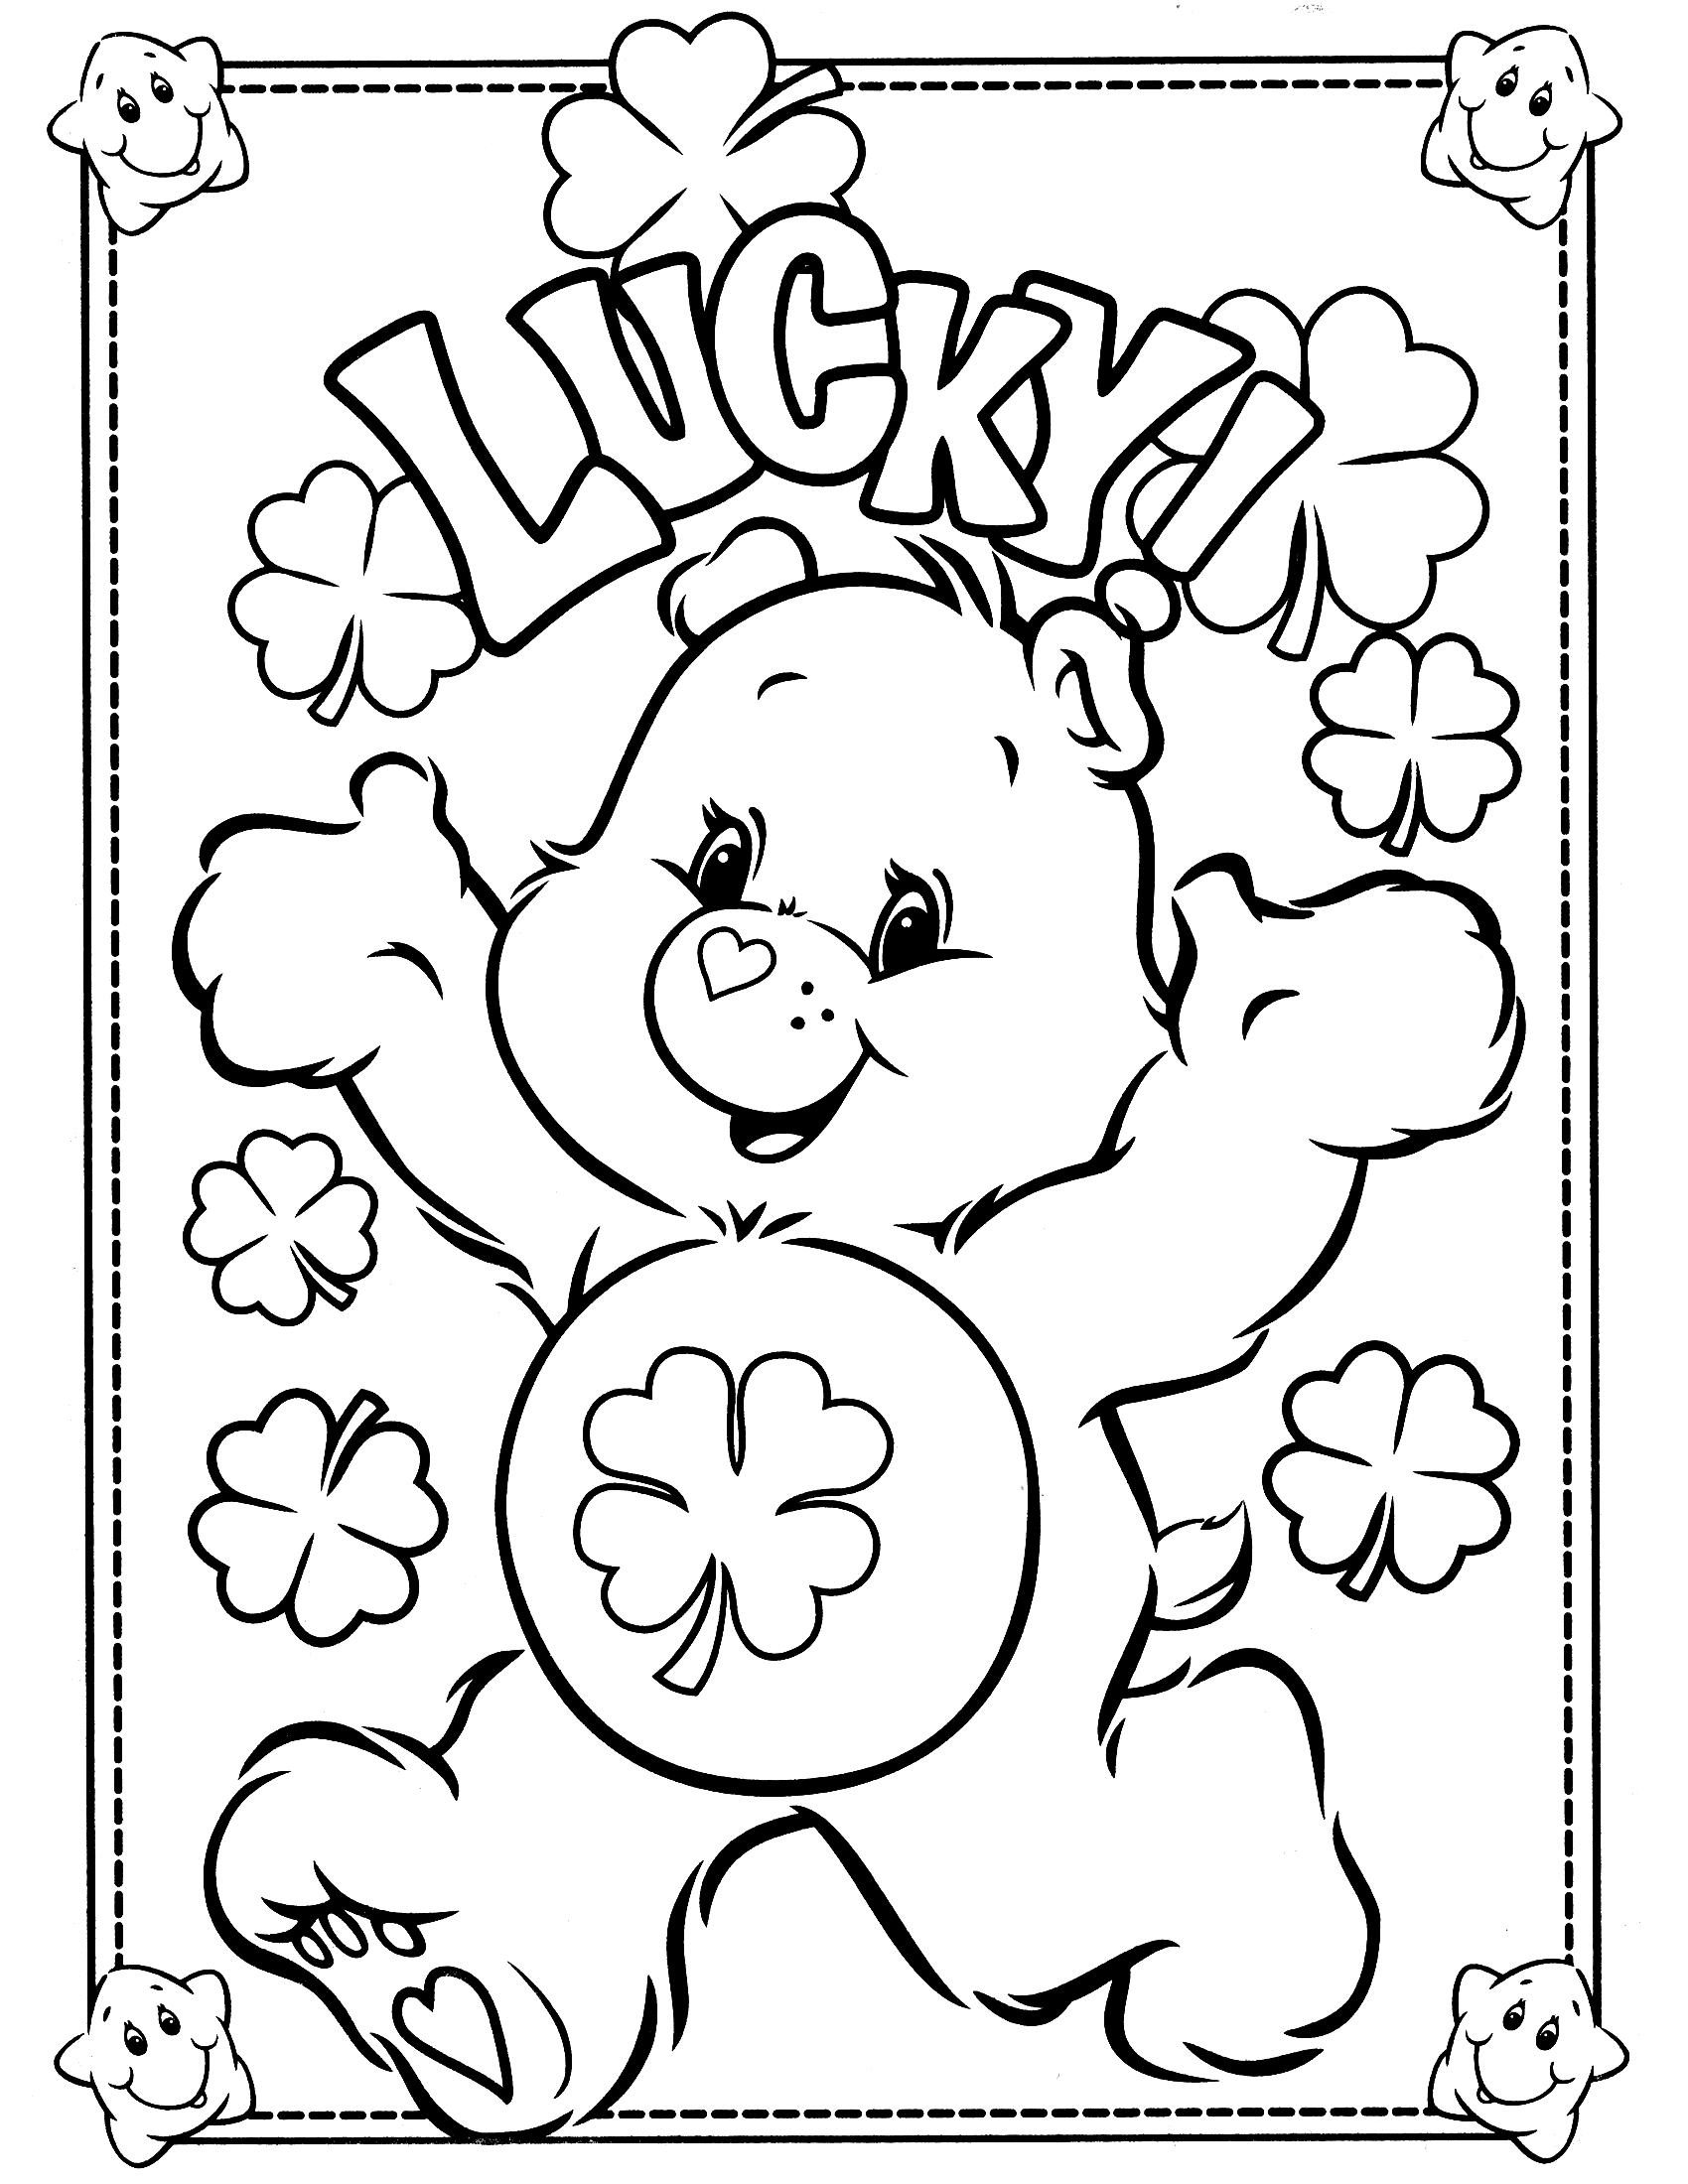 coloring bears free printable care bear coloring pages for kids bears coloring